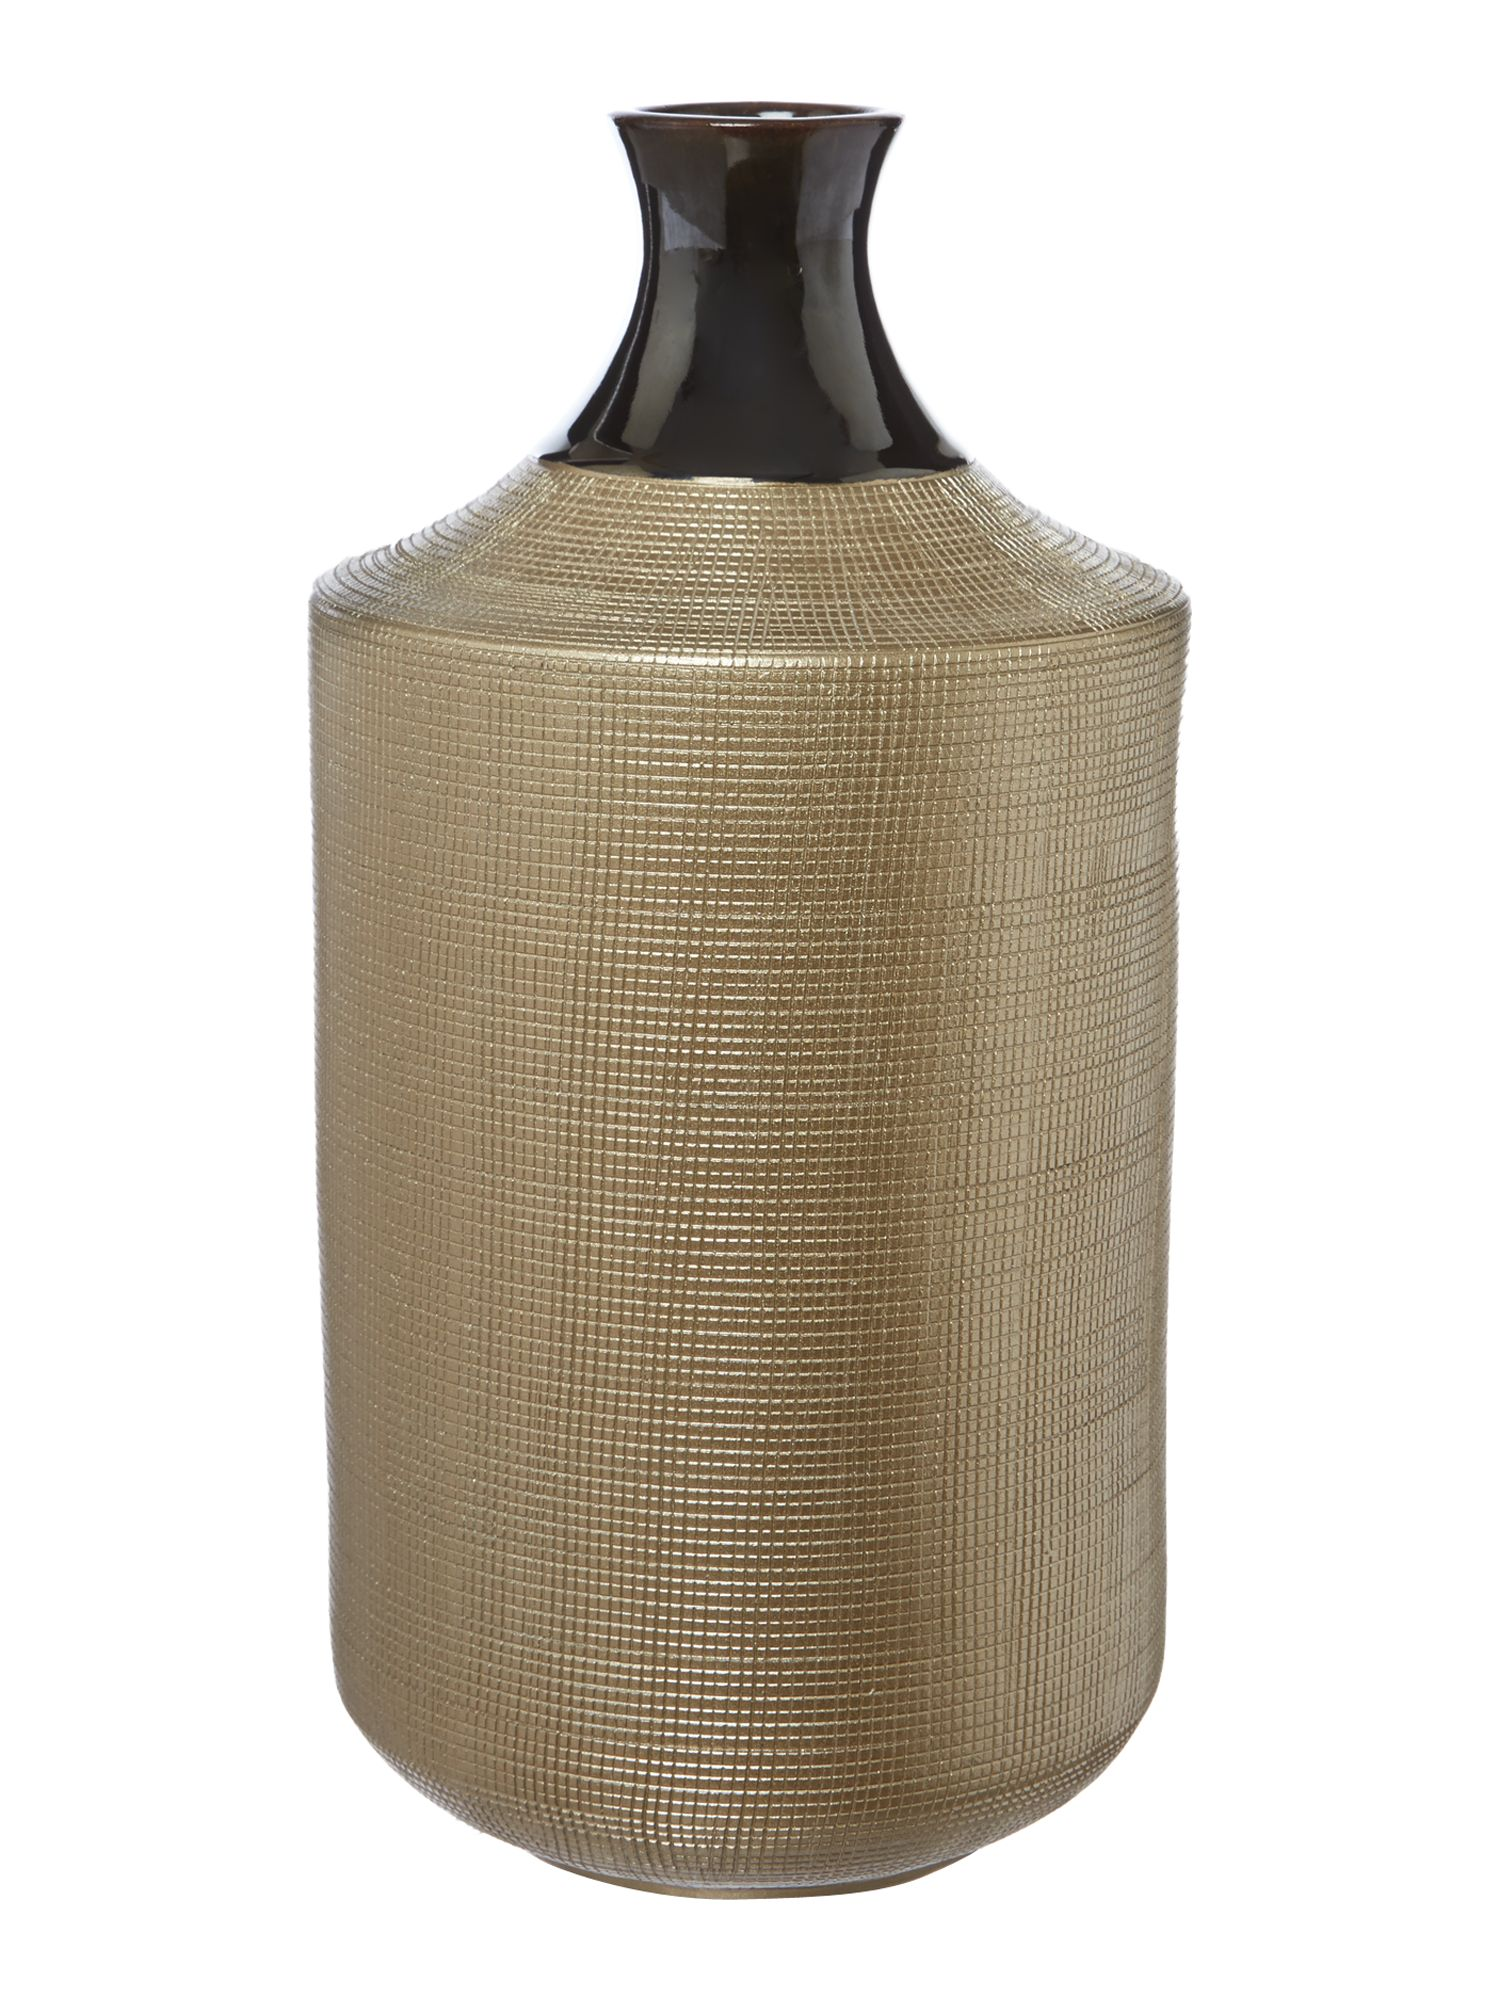 Bronze ceramic vase, tall